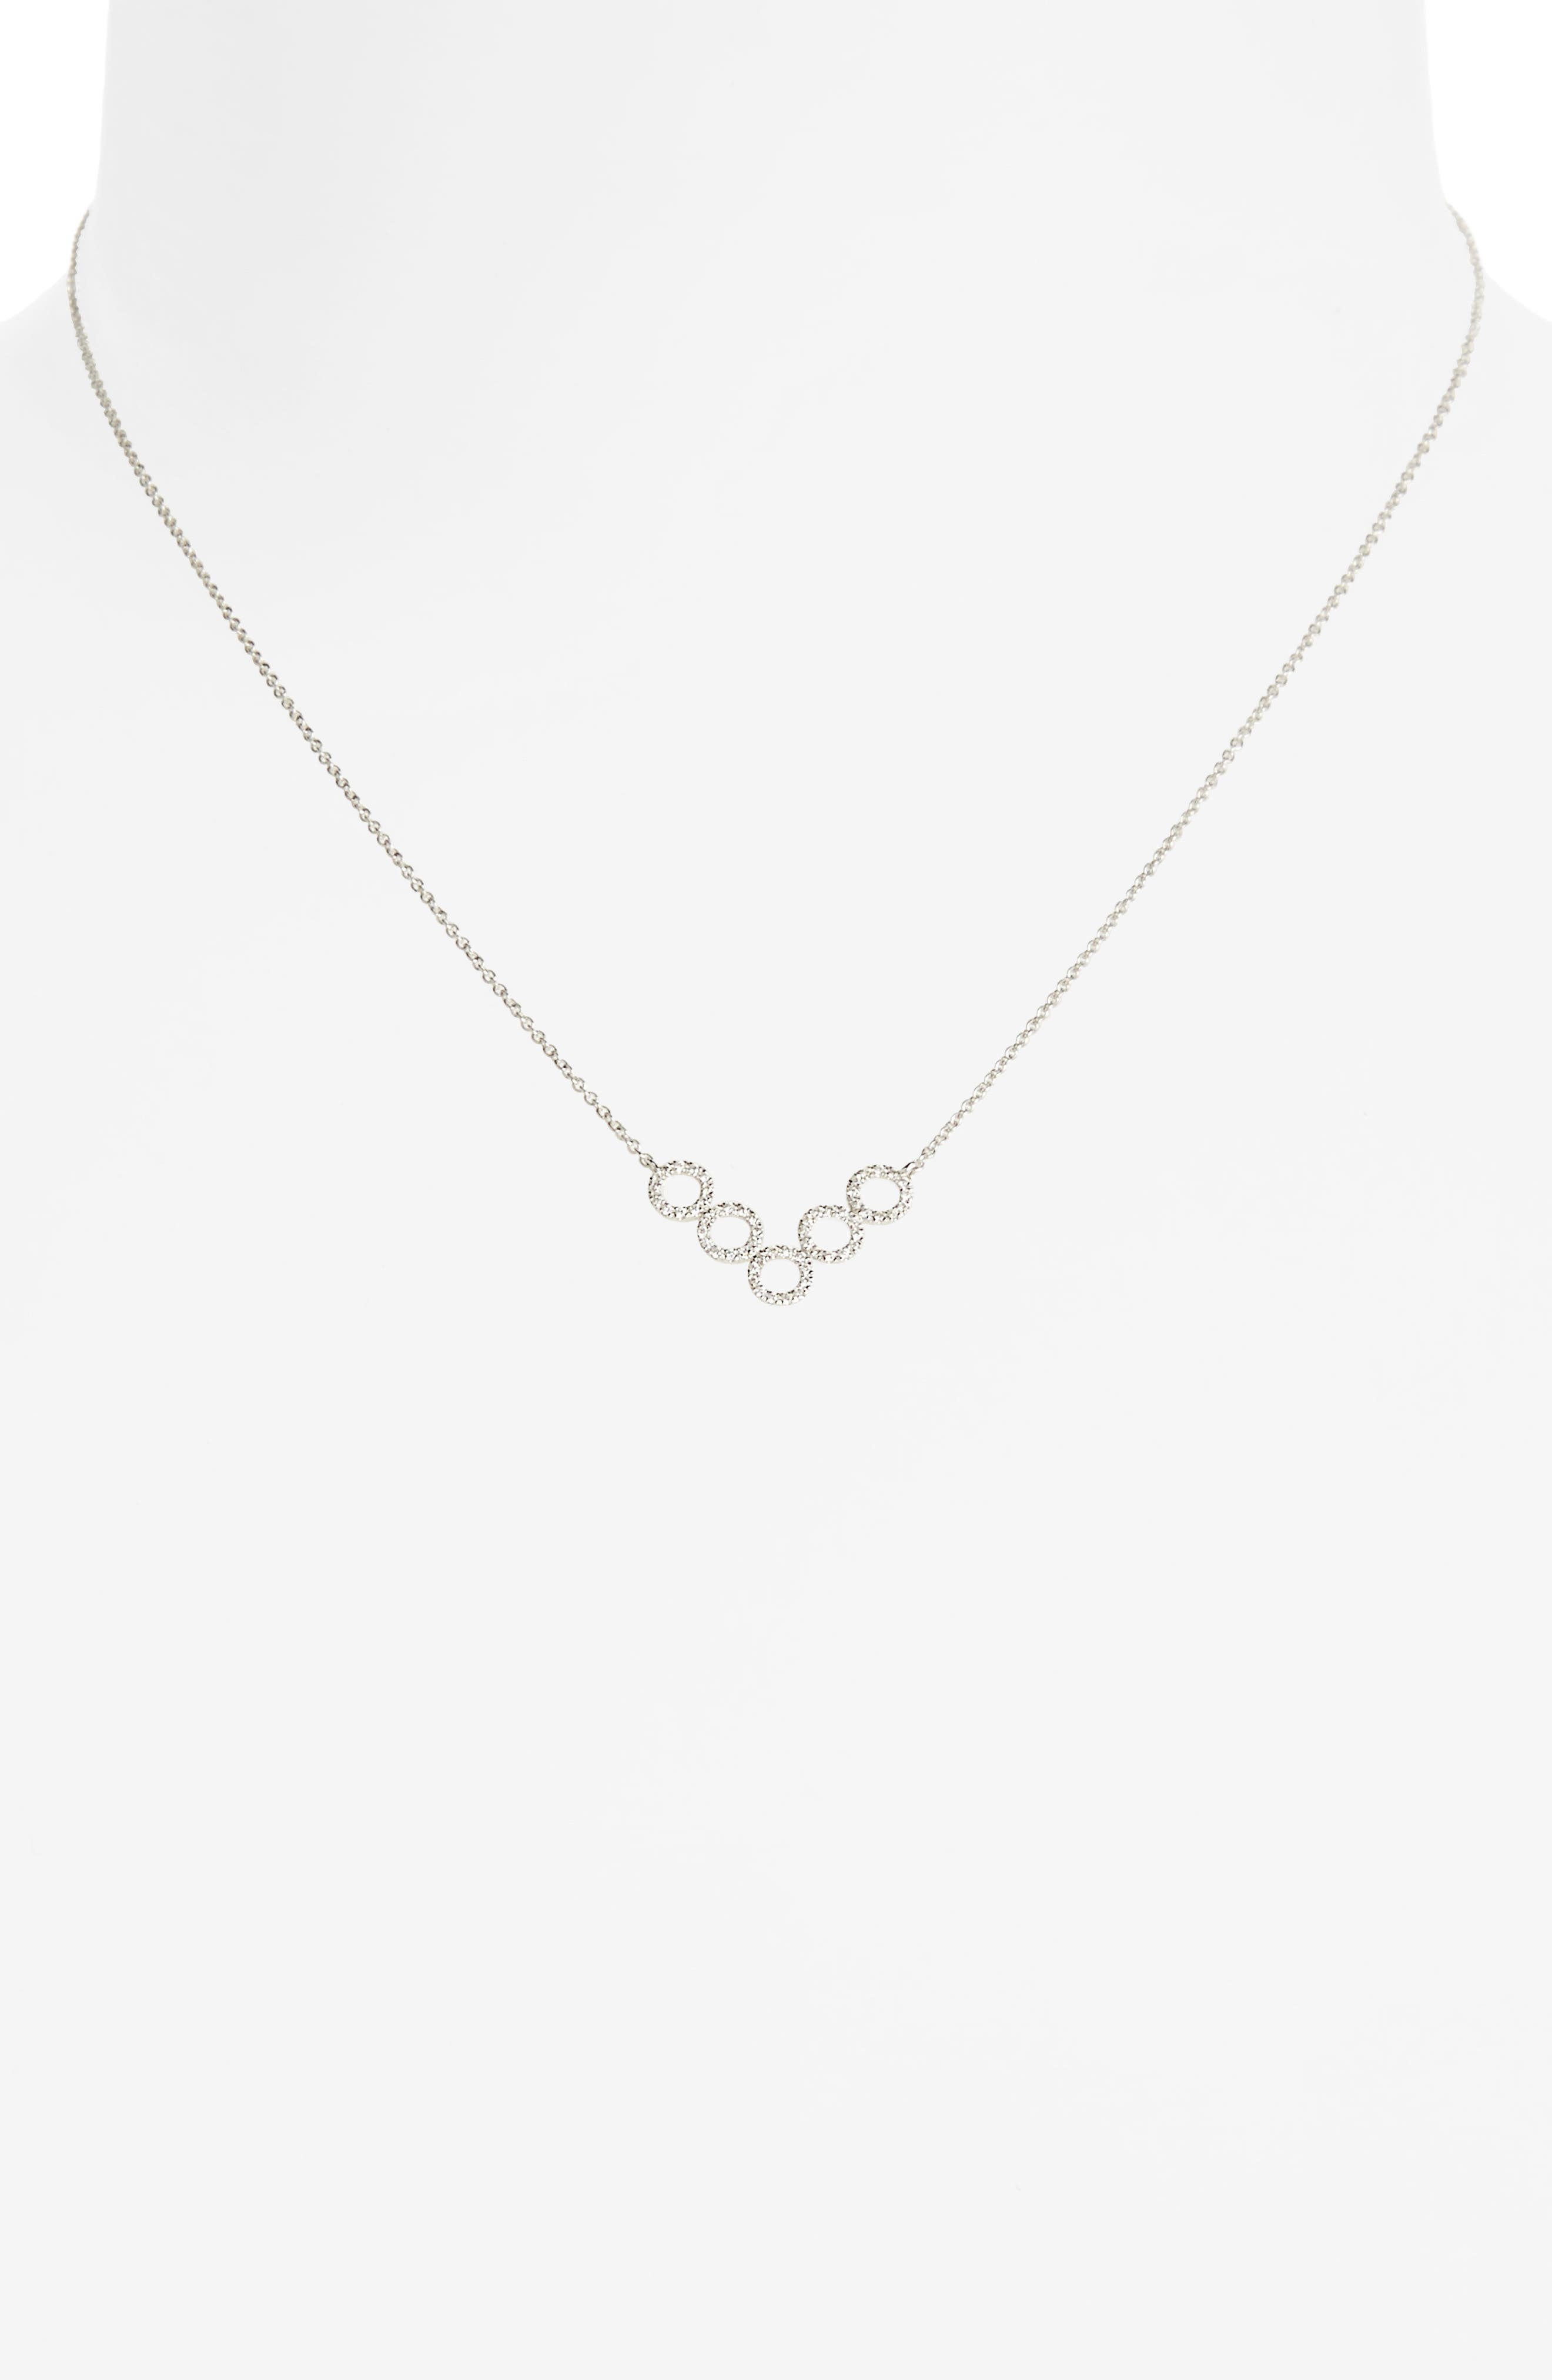 Alternate Image 1 Selected - Bony Levy Geometric Circle Pendant Necklace (Nordstrom Exclusive)